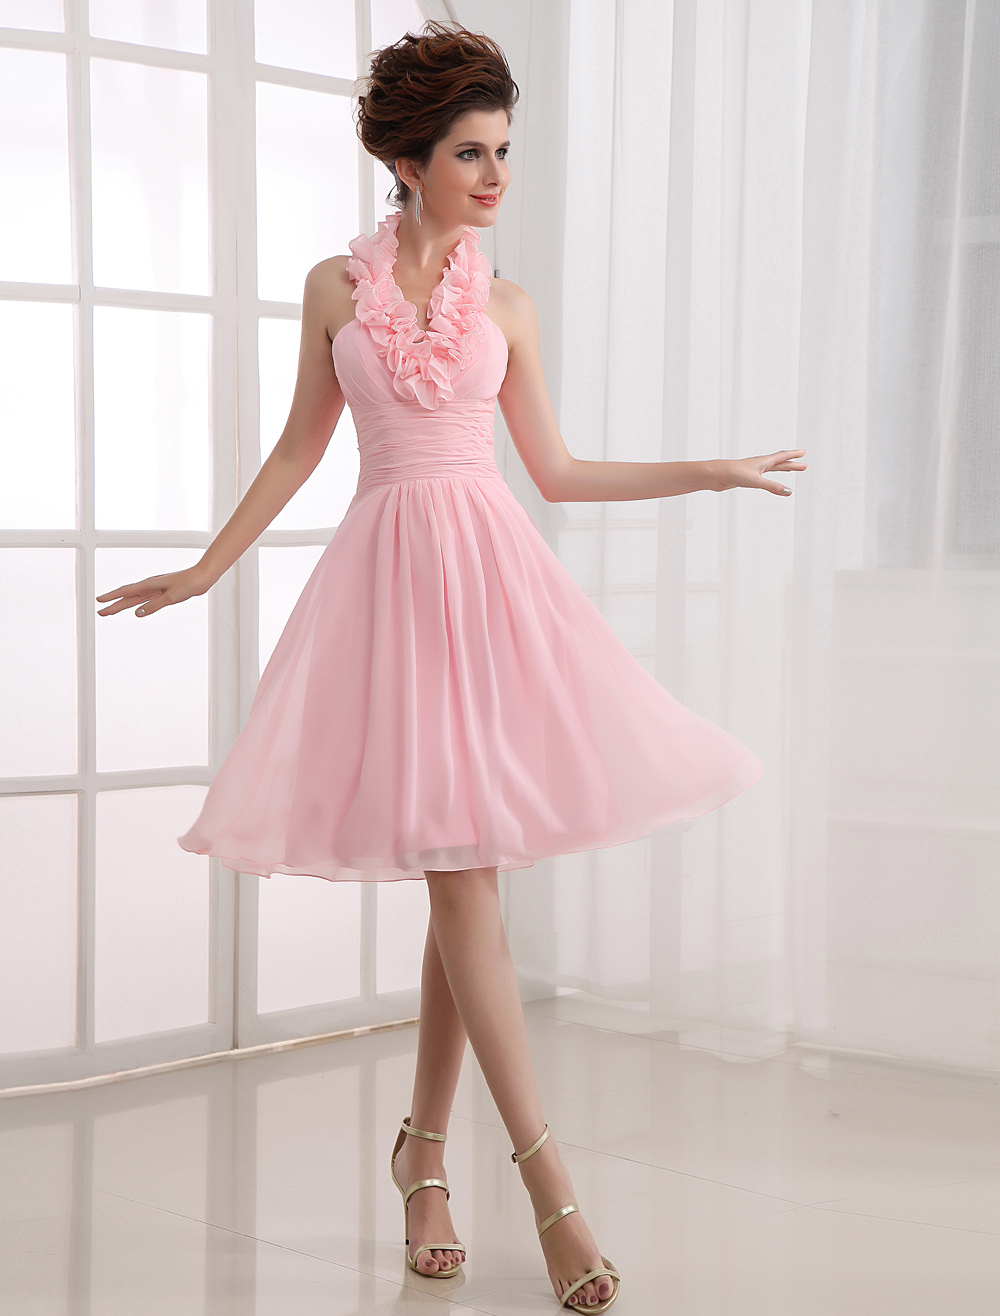 Short Bridesmaid Dress With Ruffles Halter Neck